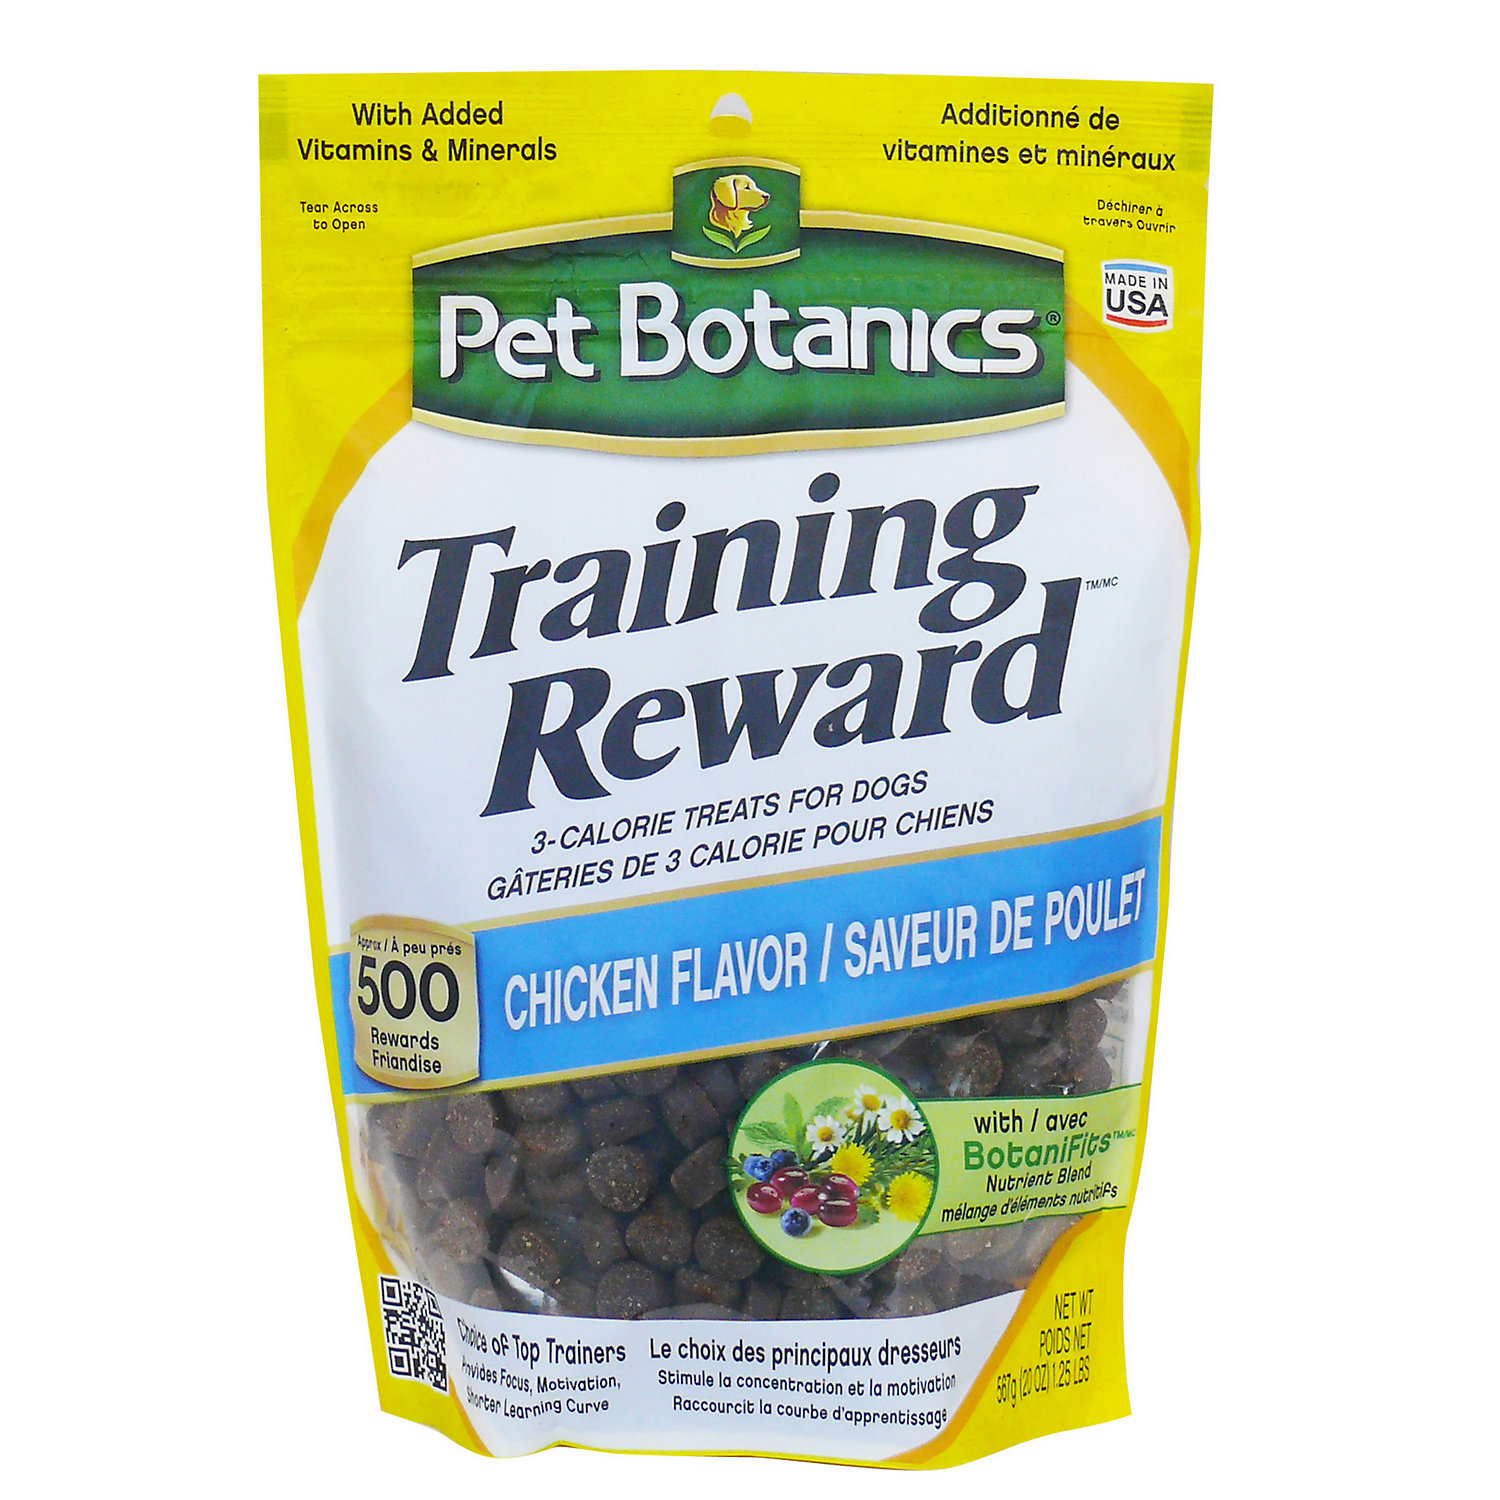 Image of Pet Botanics Training Reward Chicken Flavor Dog Treats